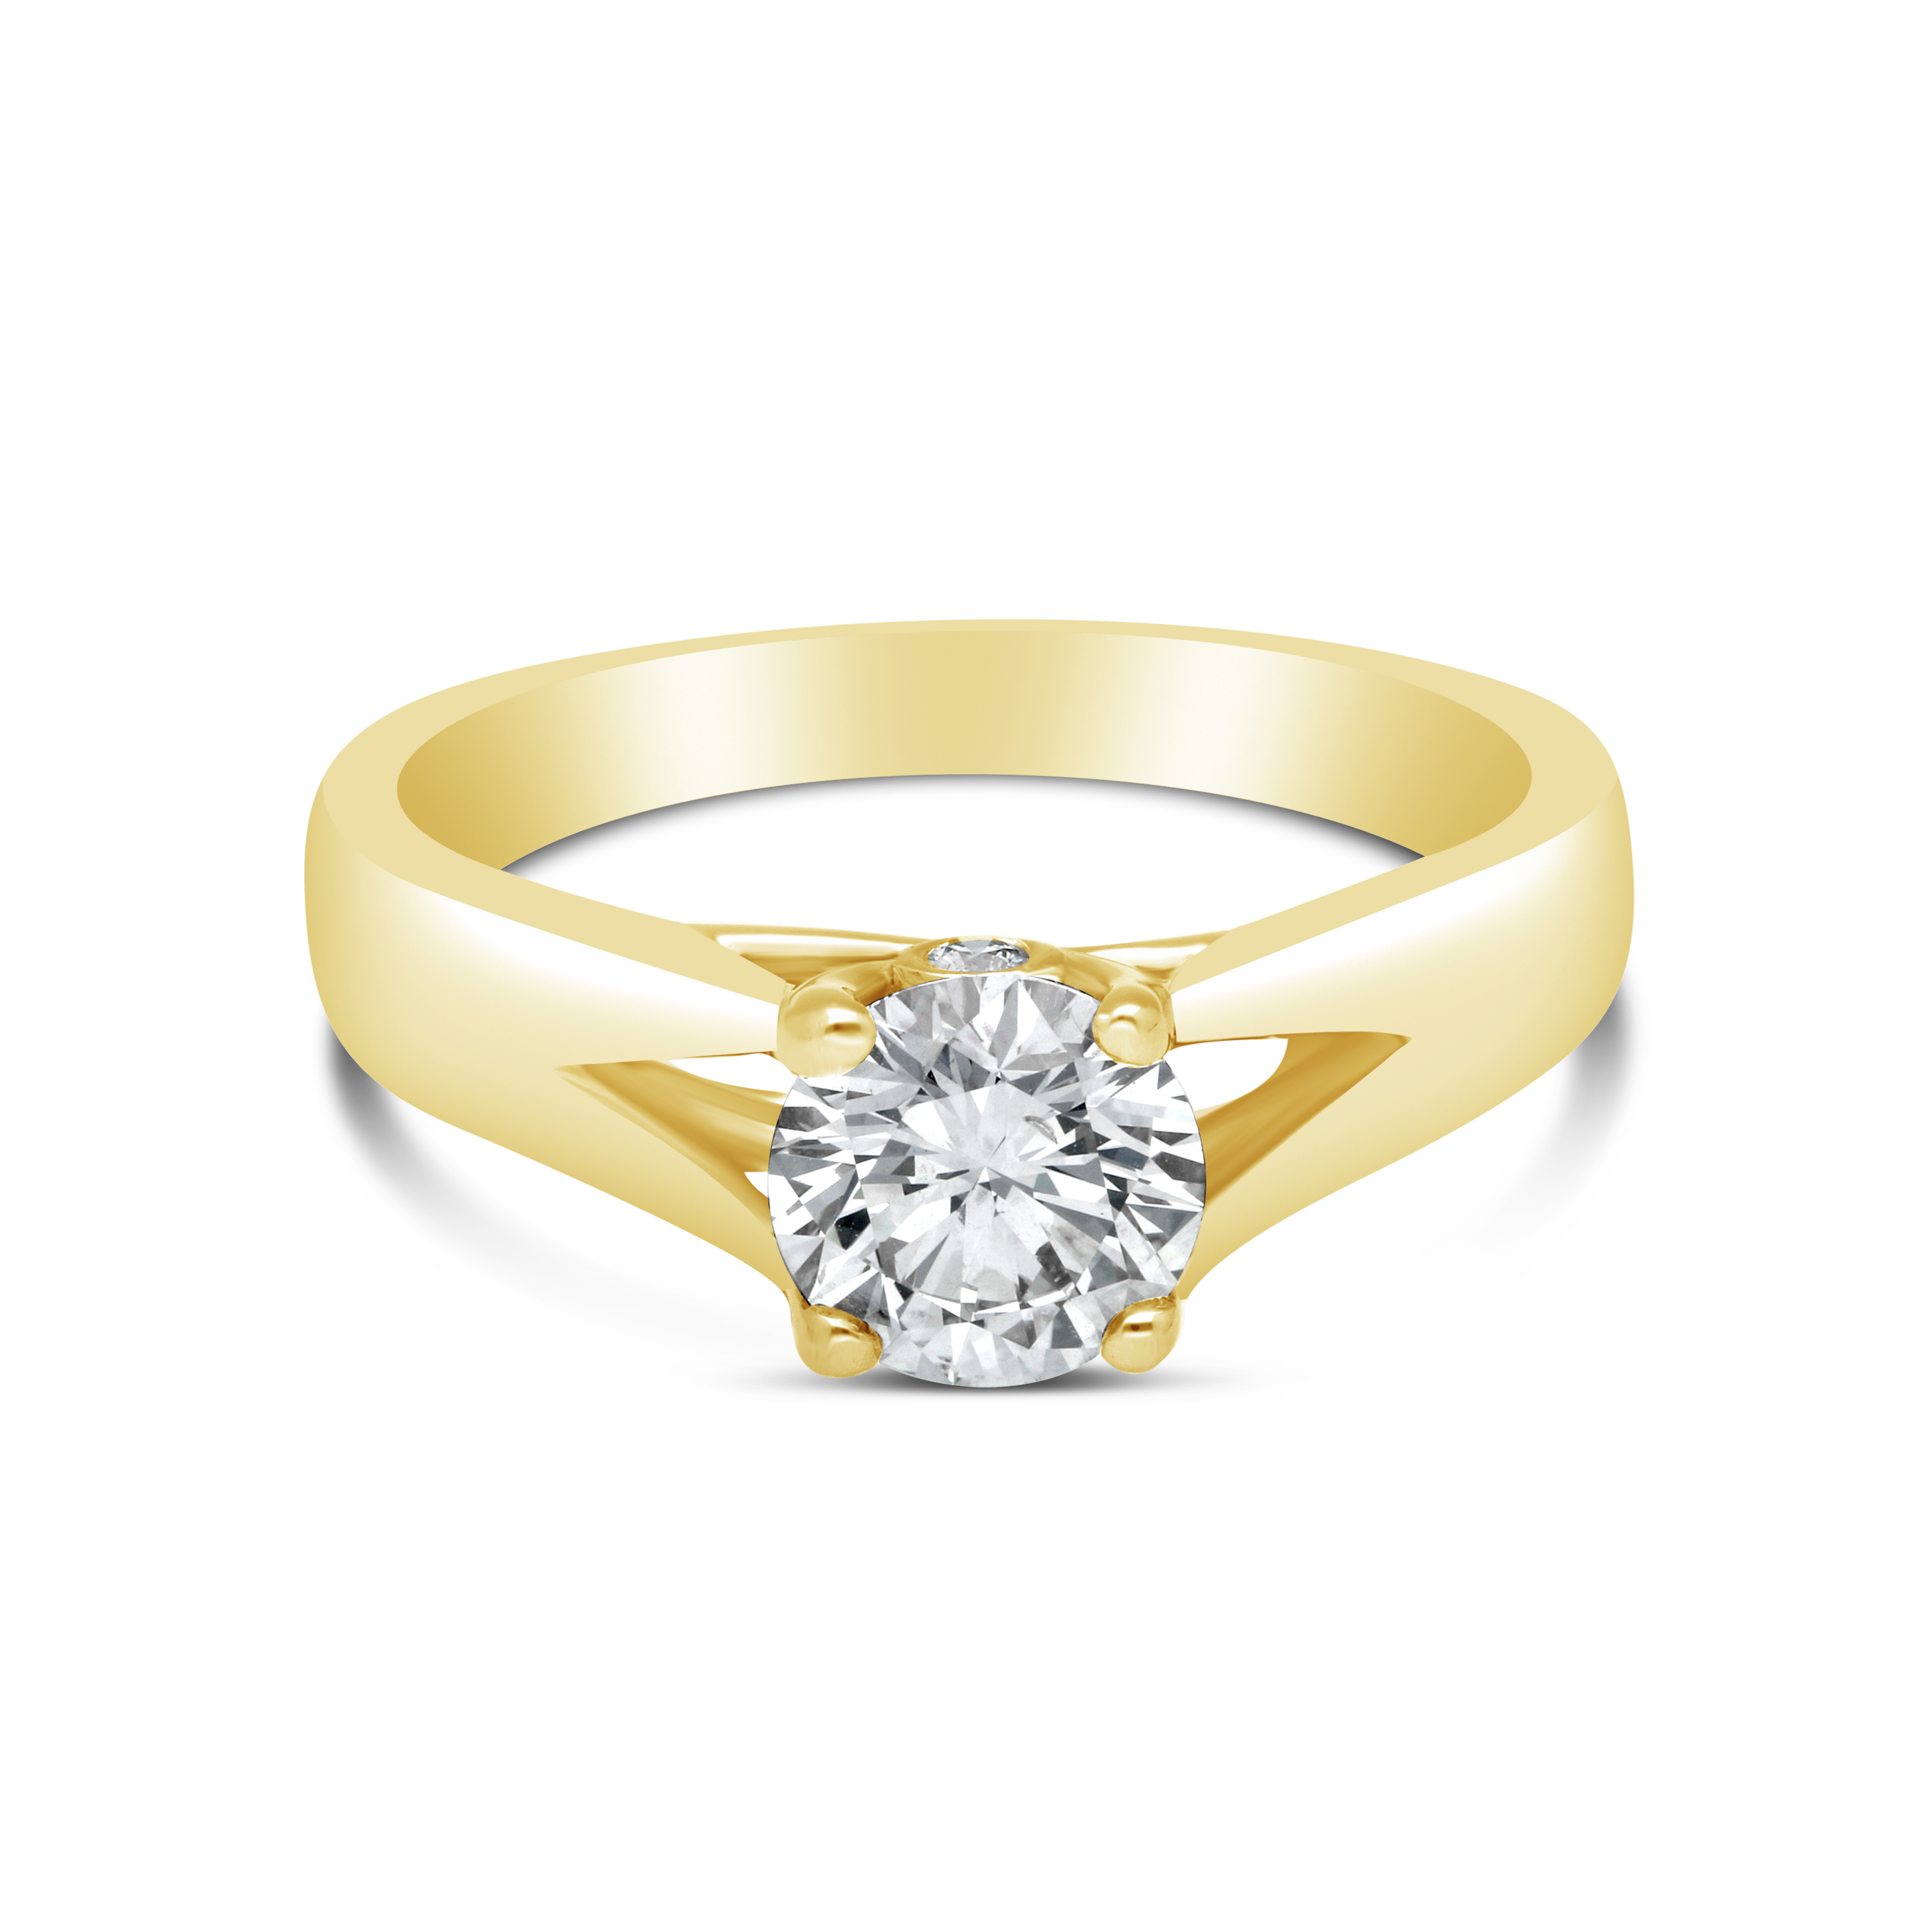 18ct Round Cut Diamond 1.02 Ct Solitaire Ring With Side